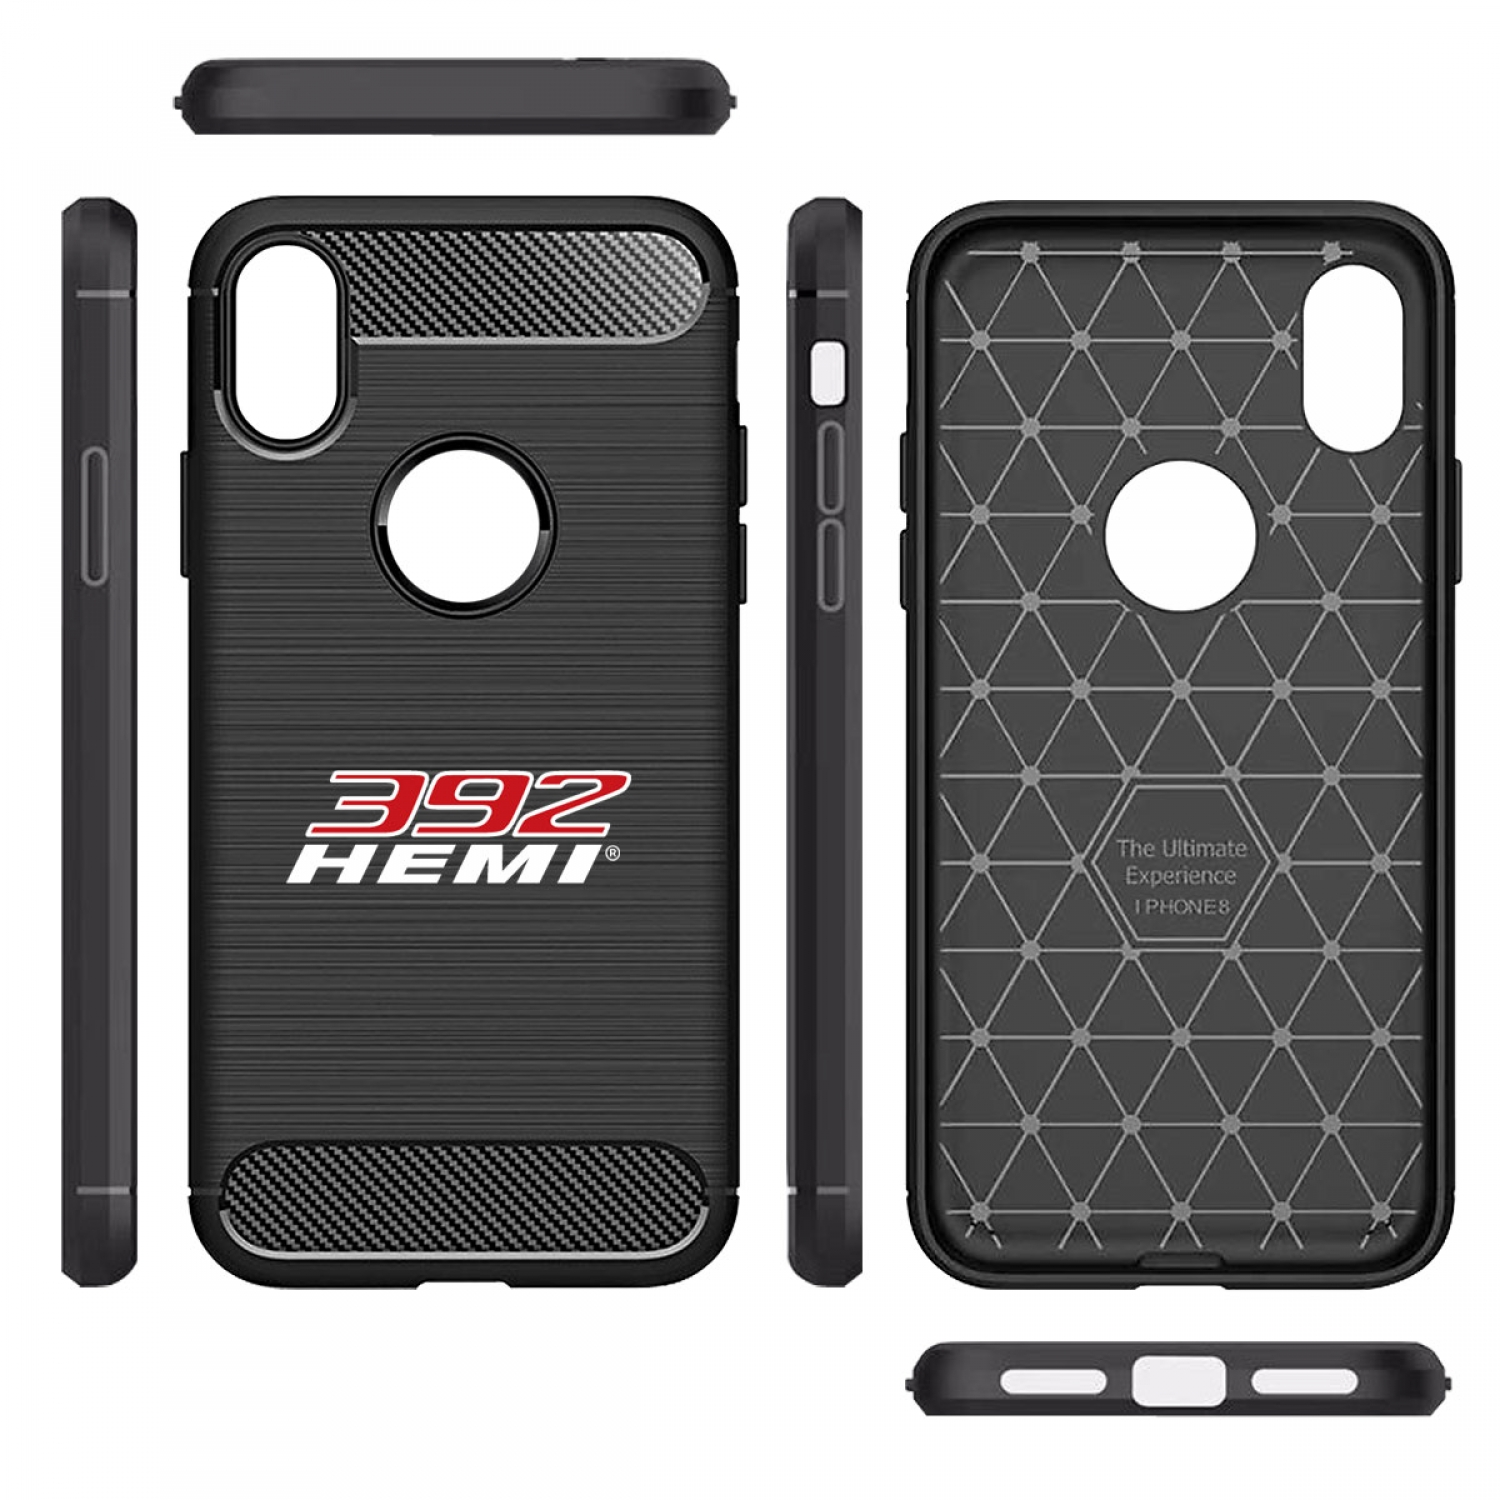 HEMI 392 HP iPhone X TPU Shockproof Black Carbon Fiber Textures Stripes Cell Phone Case